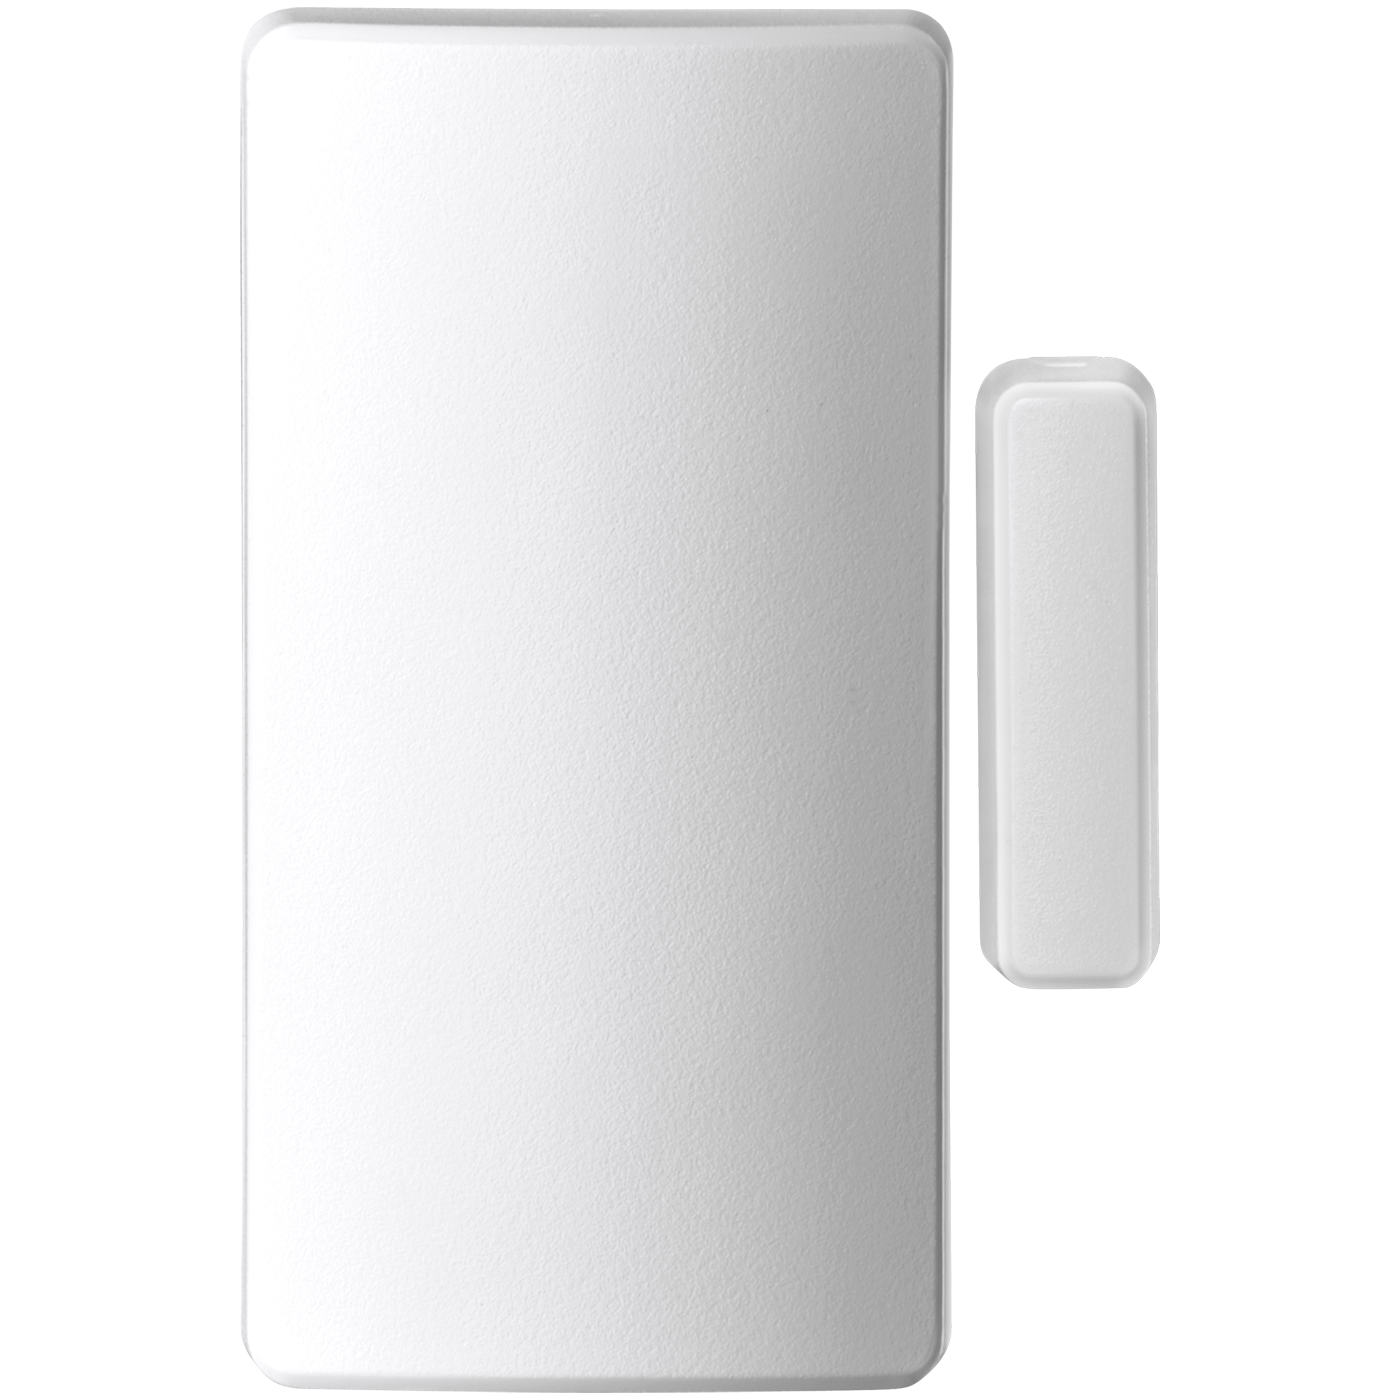 Sixct Honeywell Wireless Door Window Contact For Lyric Controller Alarm Wiring Series